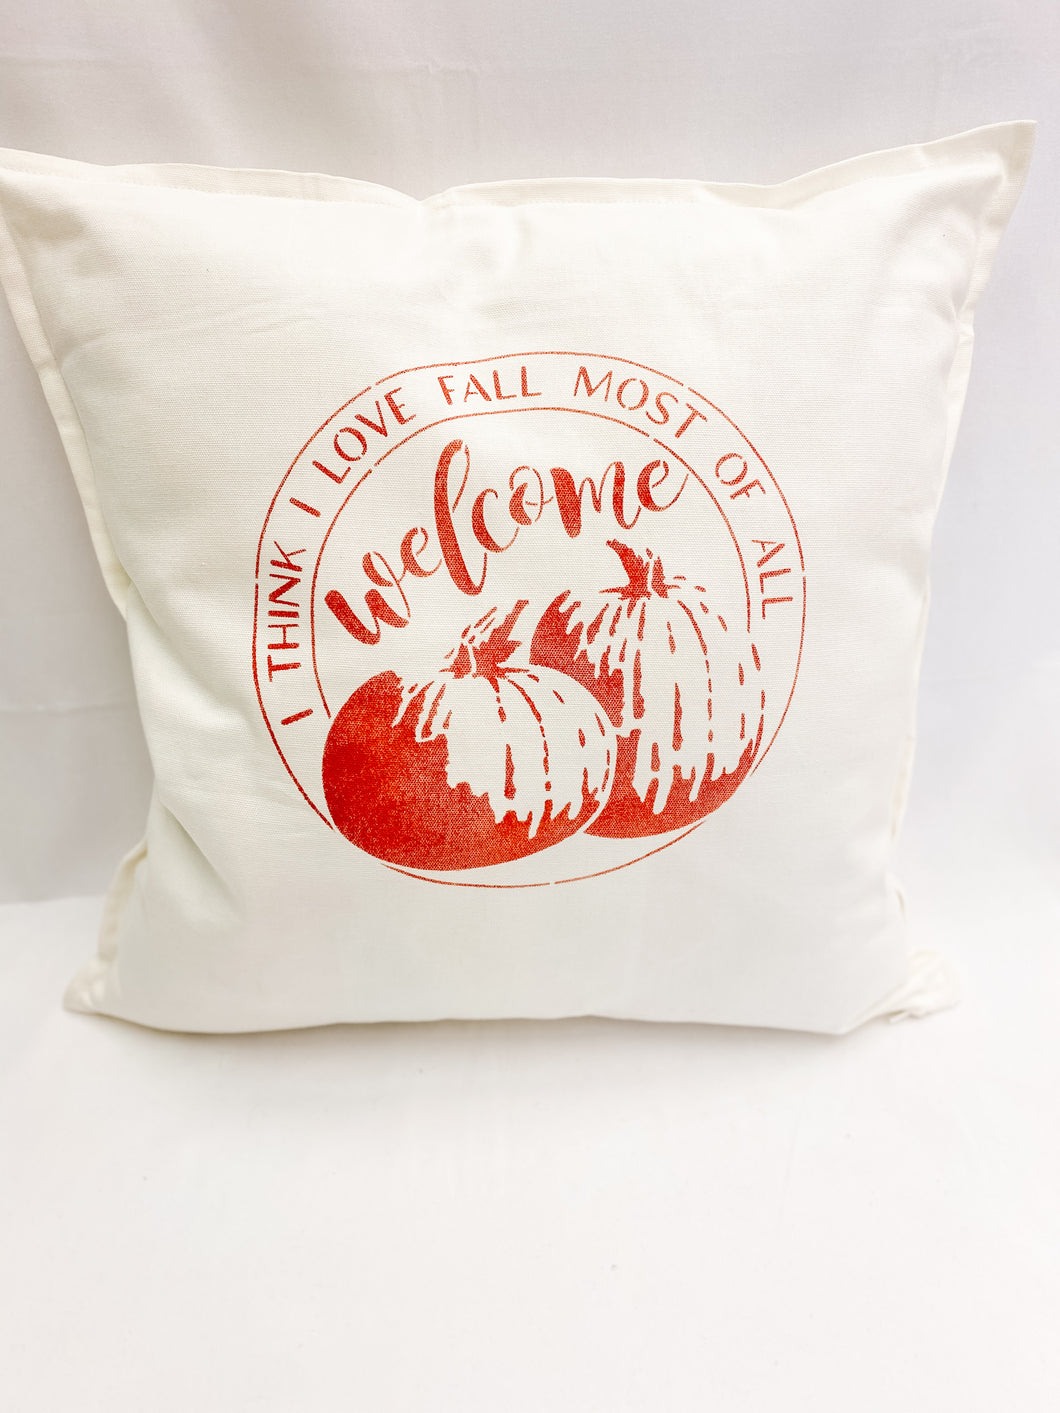 I Think I Love Fall Most of All - Throw Pillow